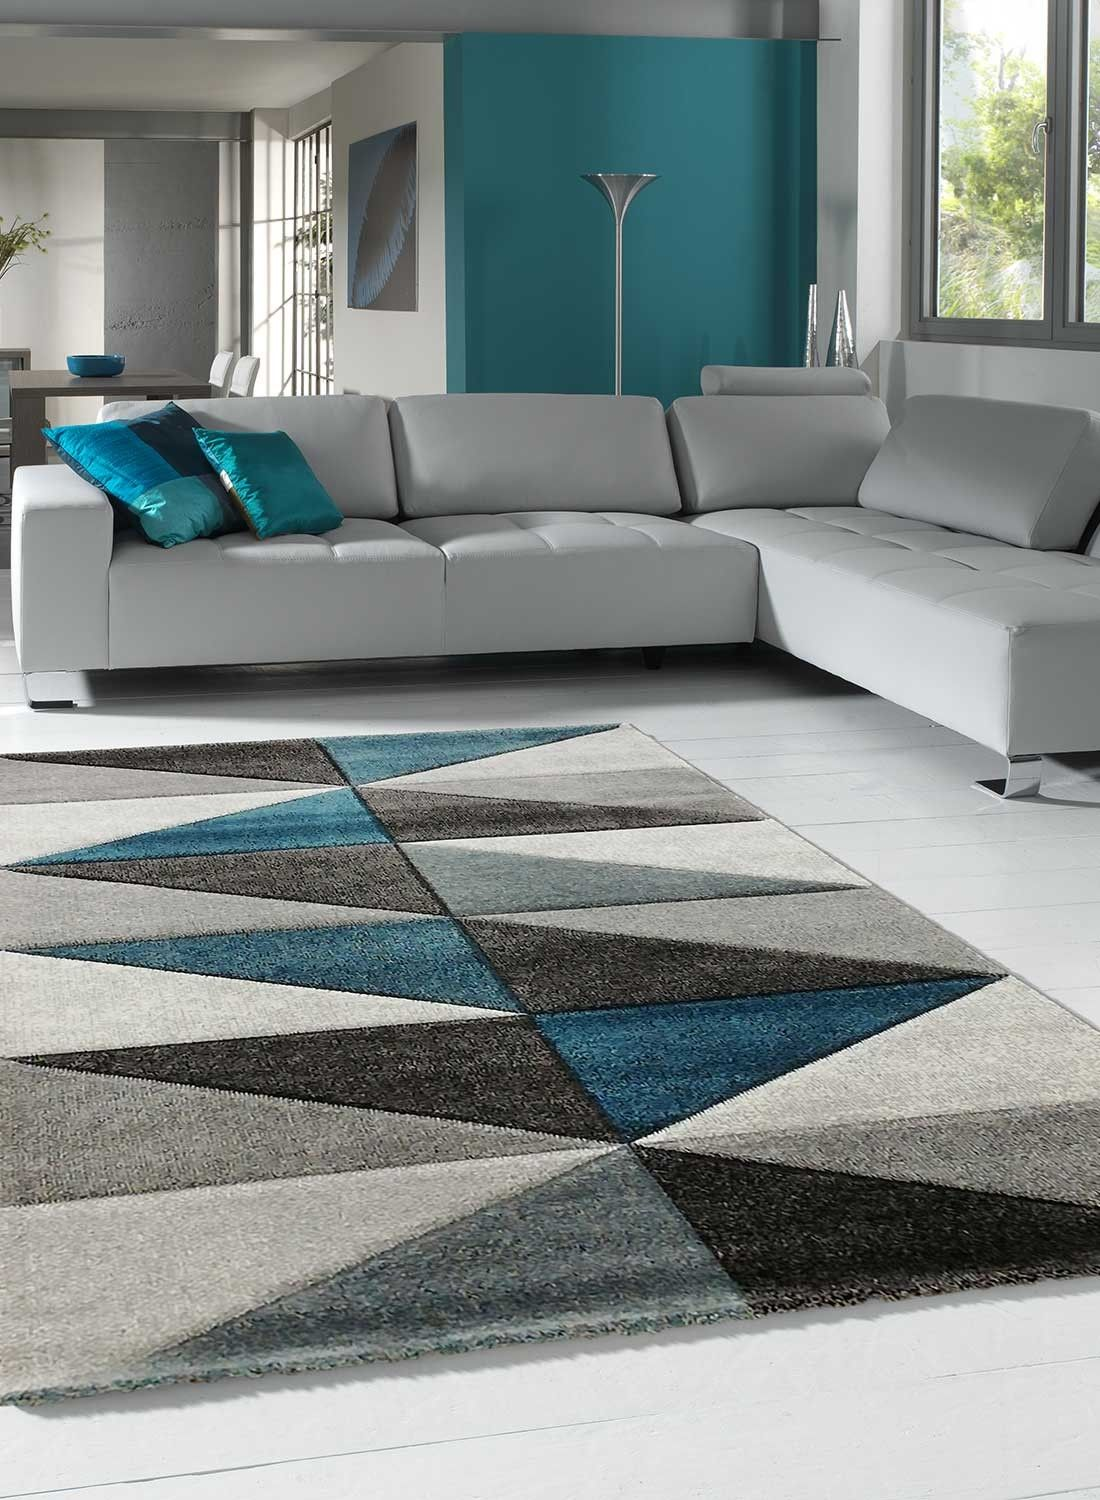 Valag Salon Moderne Gris Decoration Salon Appartement Tapis Salon Gris